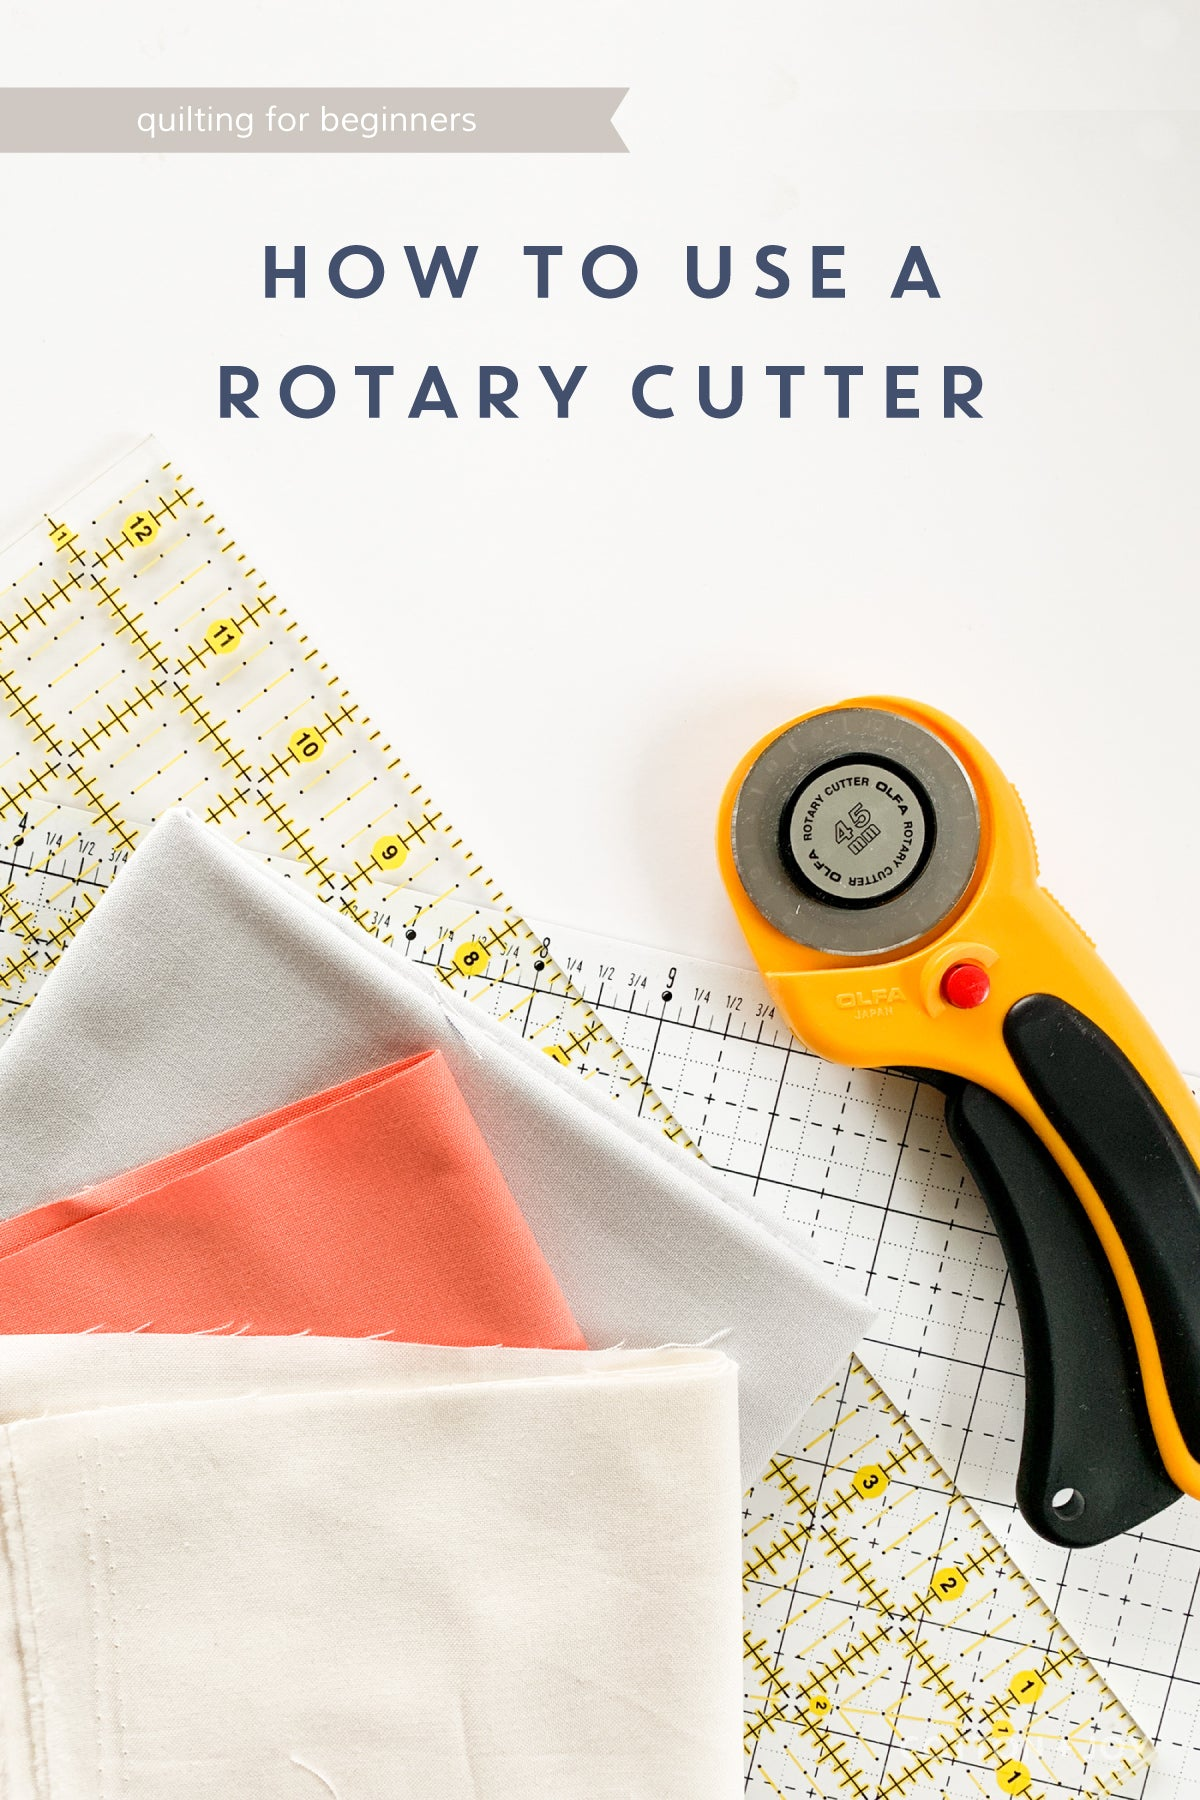 Quilting for Beginners Tutorial - How to use a rotary cutter